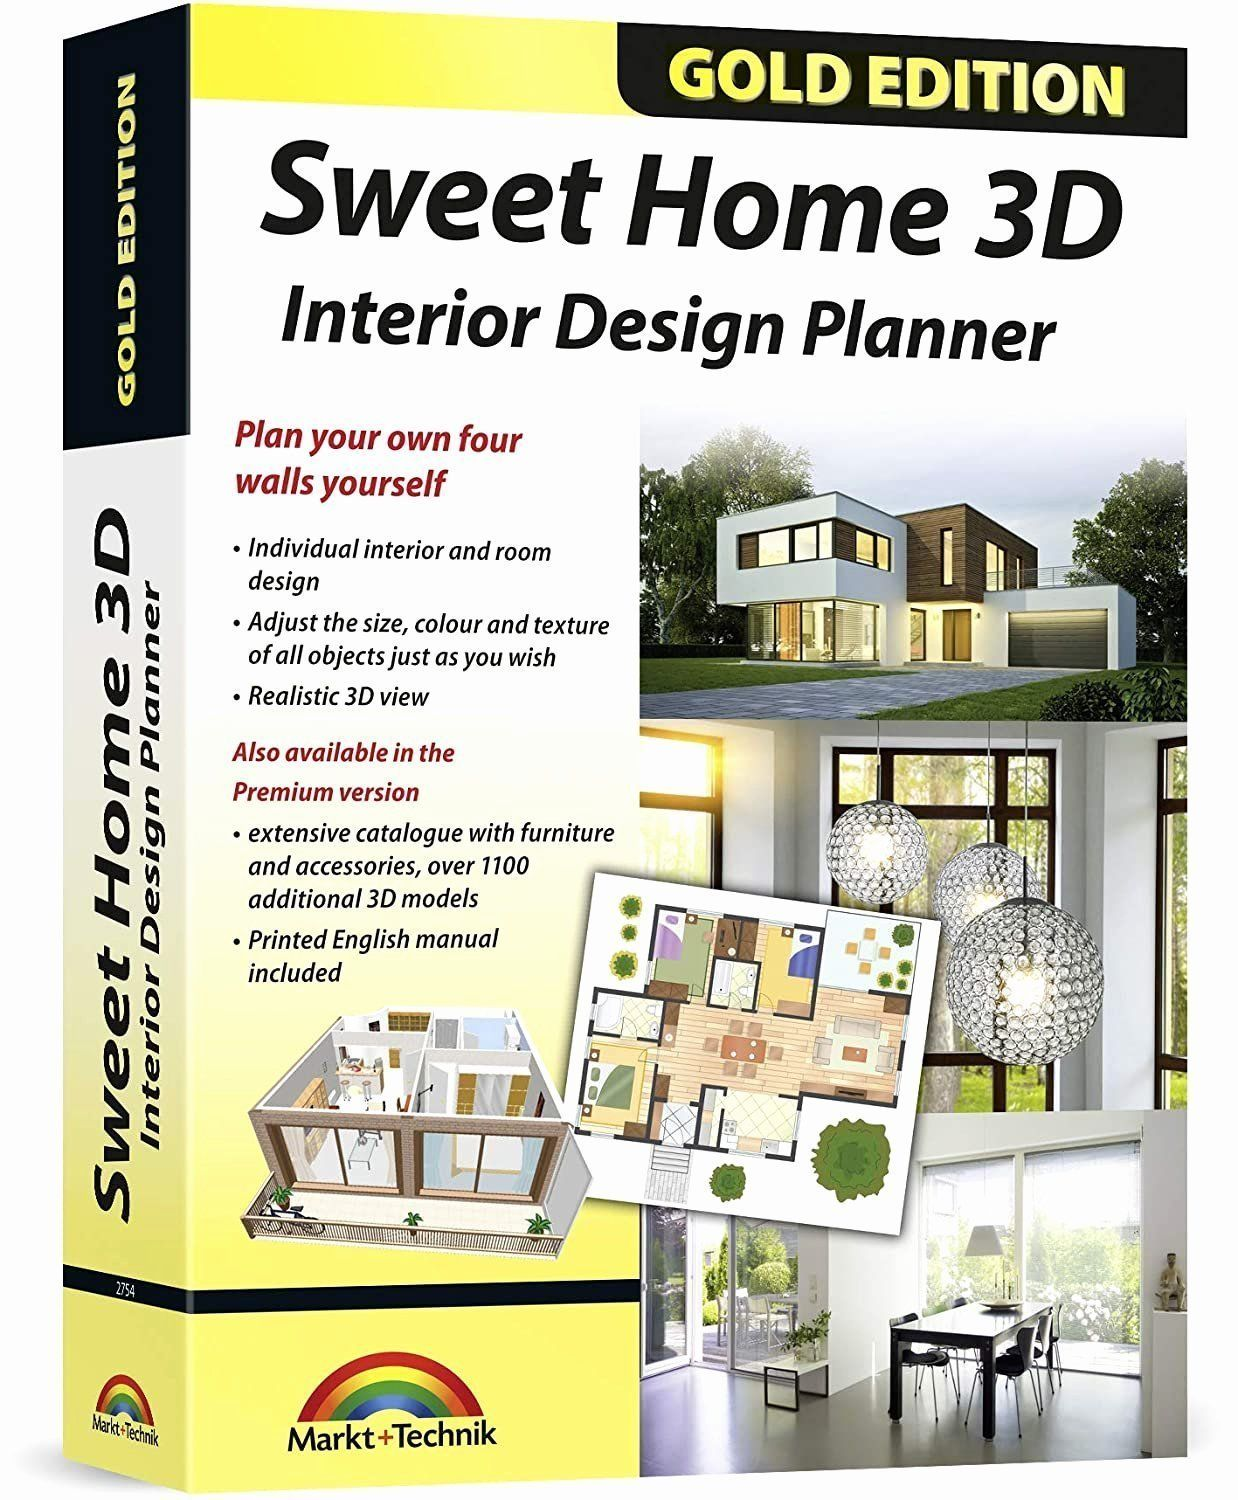 Home Design Software Free Download Full Version : design, software, download, version, Sweet, Design, Download, Version, Lovely, Interior, Planner, Software,